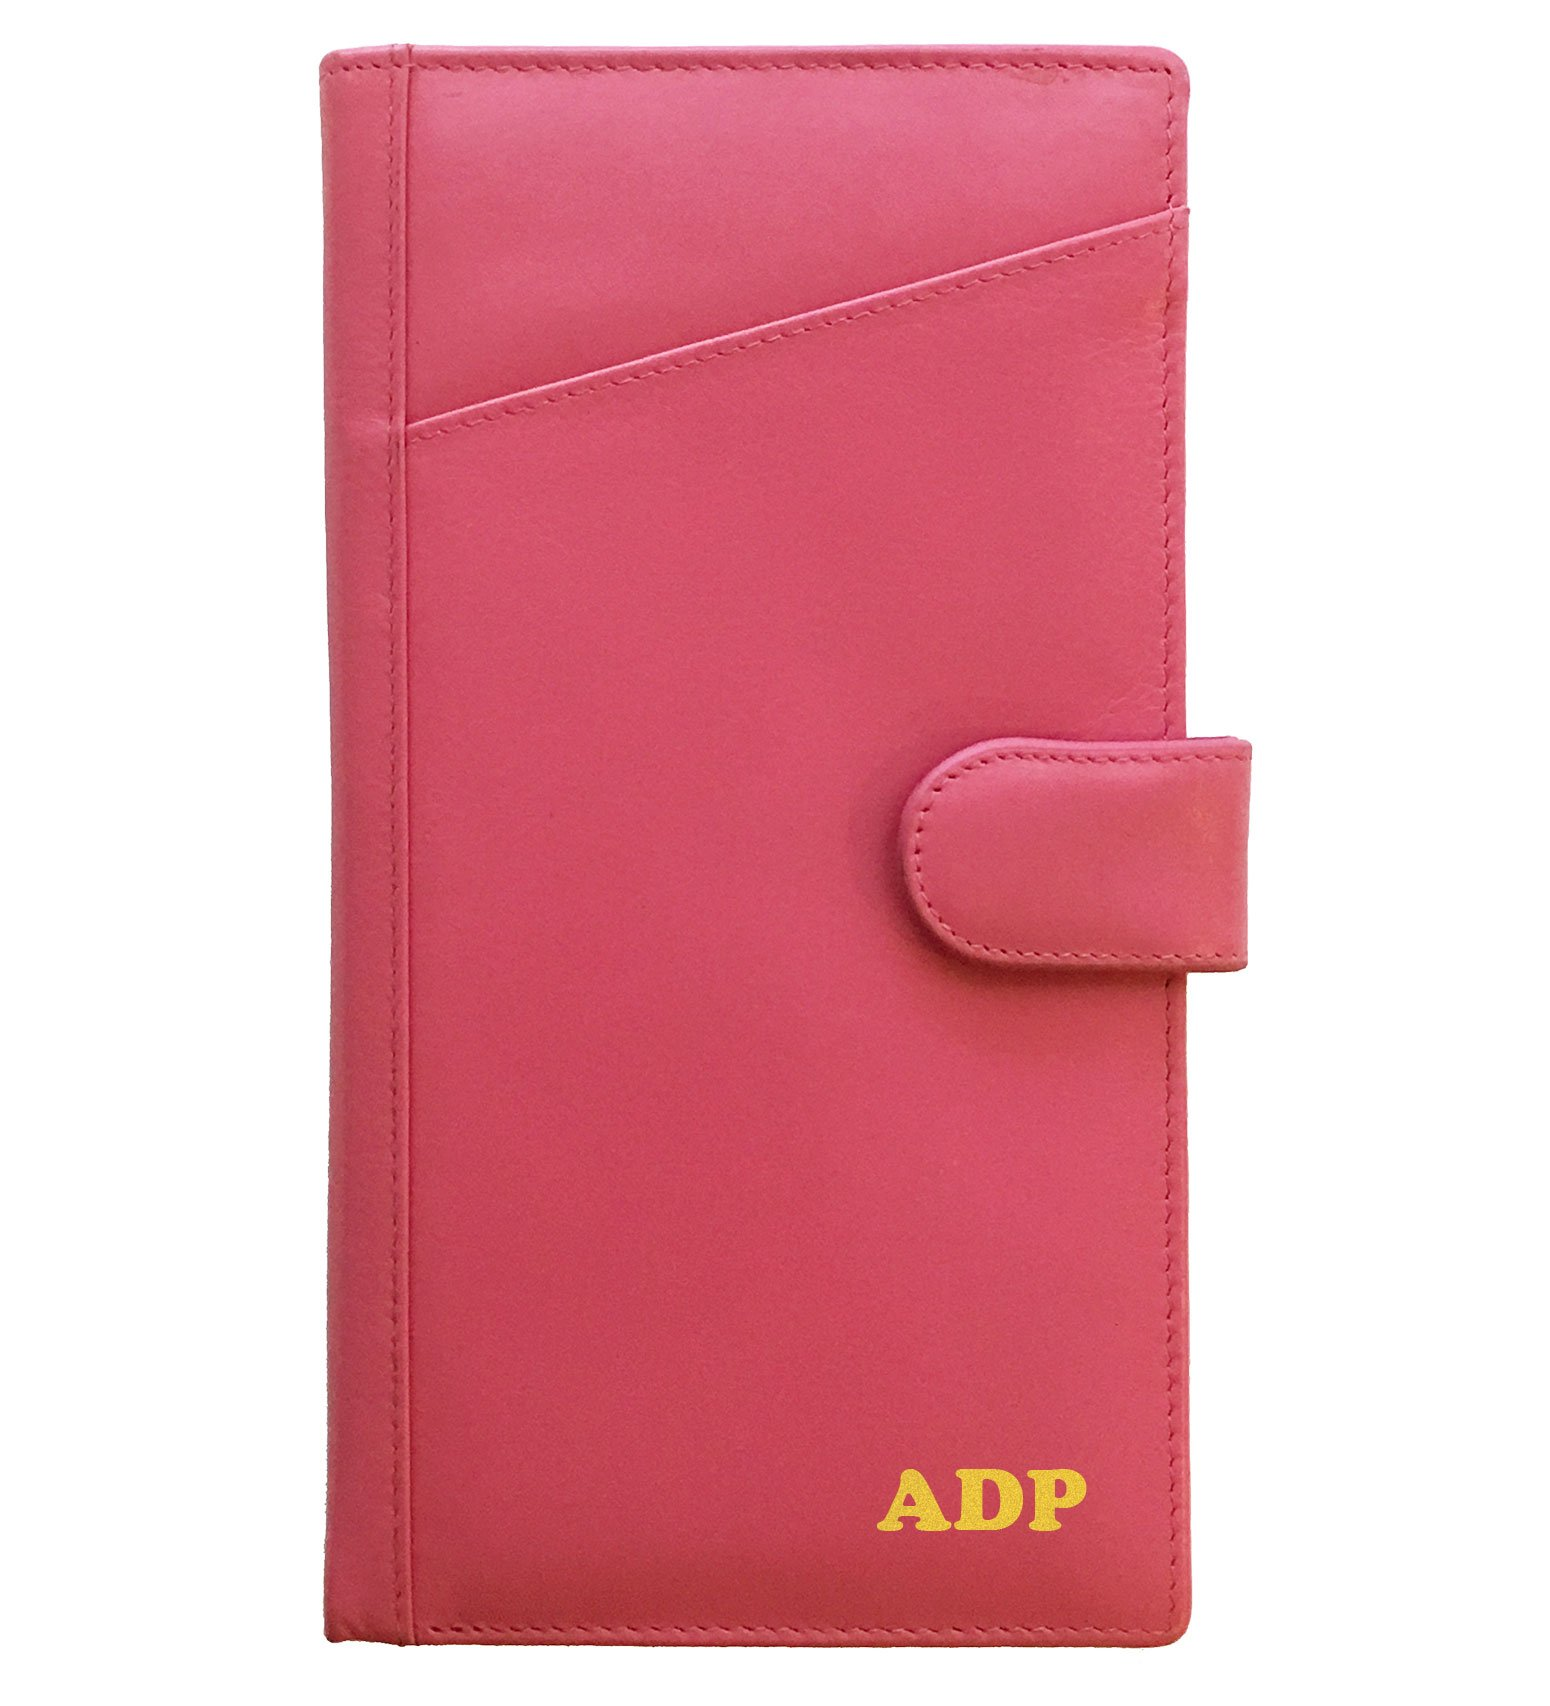 Personalized Monogrammed Hot Pink Leather RFID Travel Wallet